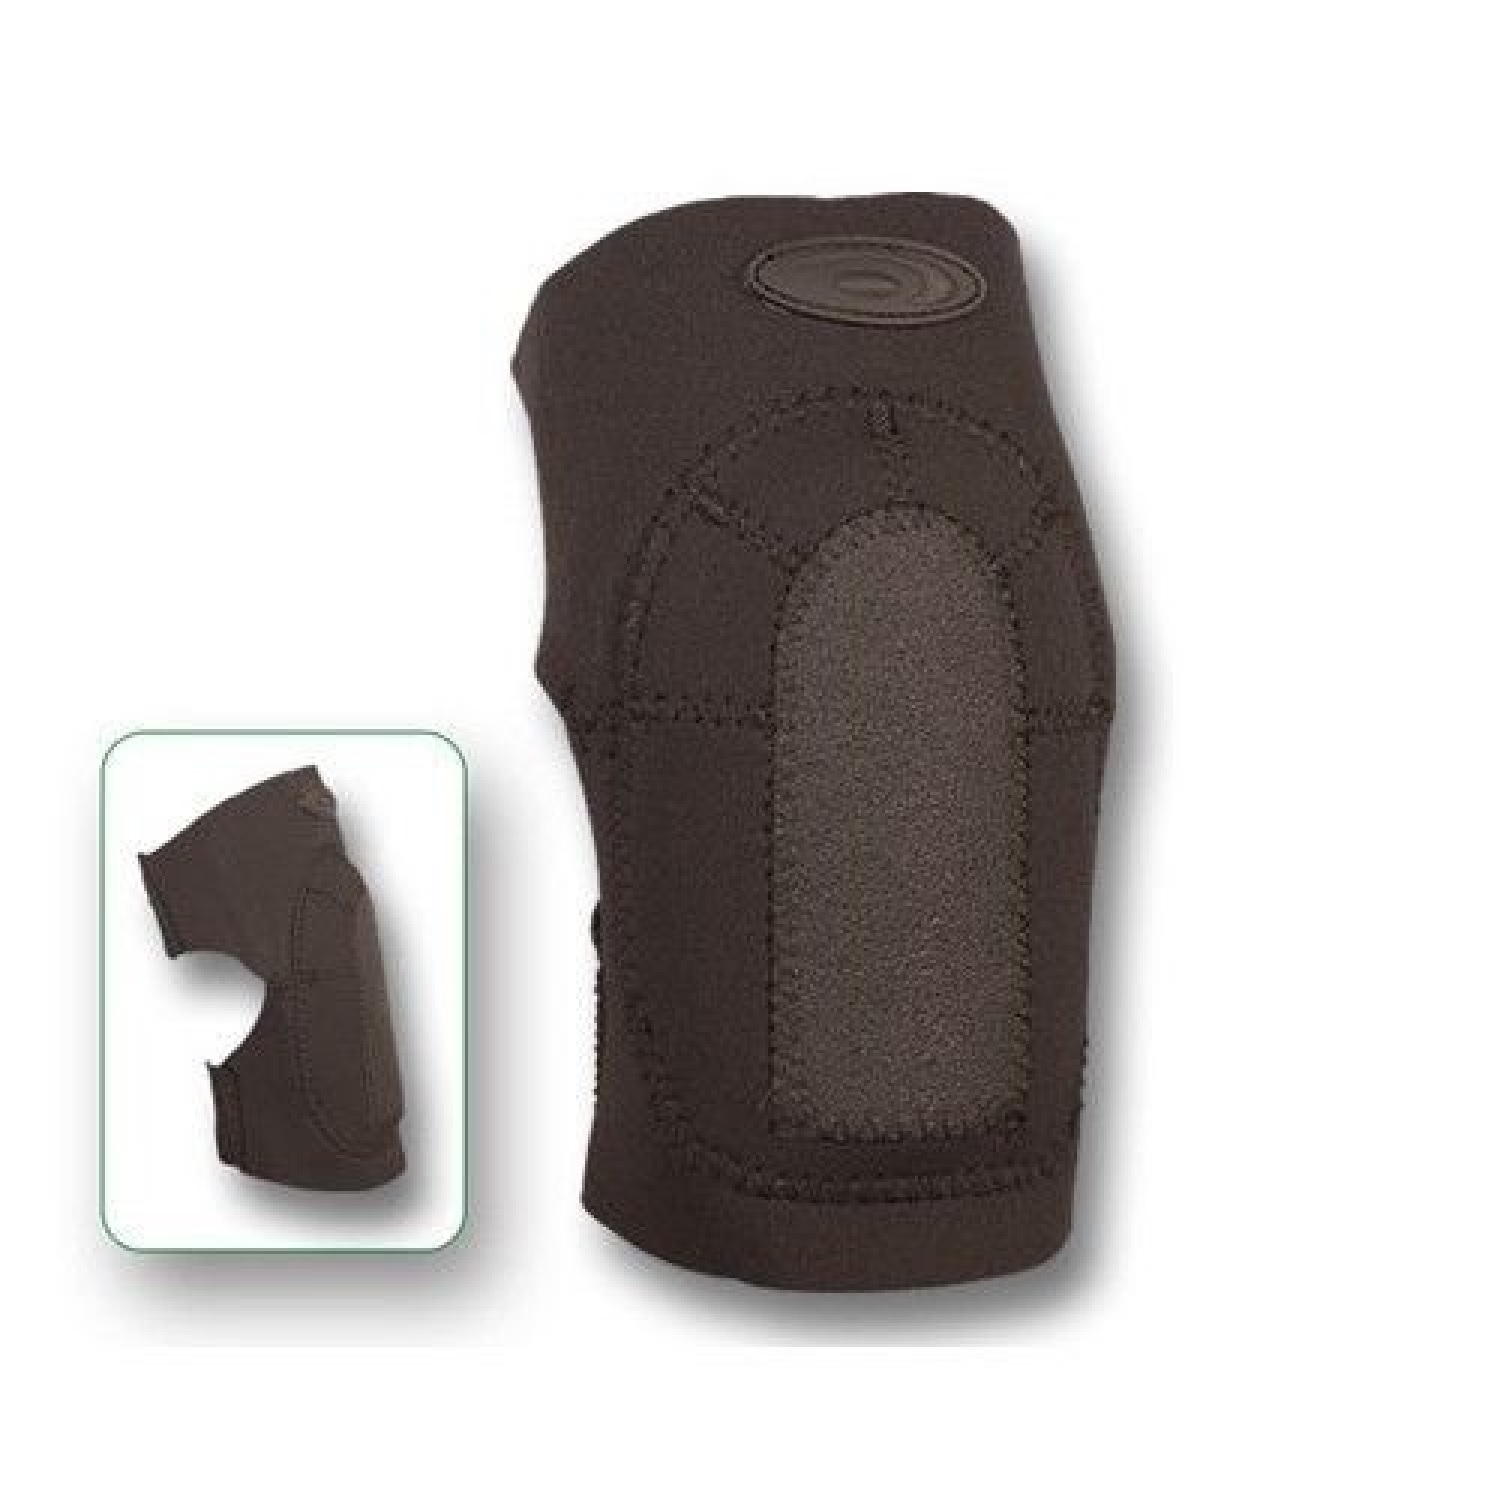 Hatch Centurion Neoprene Elbow Pads Black